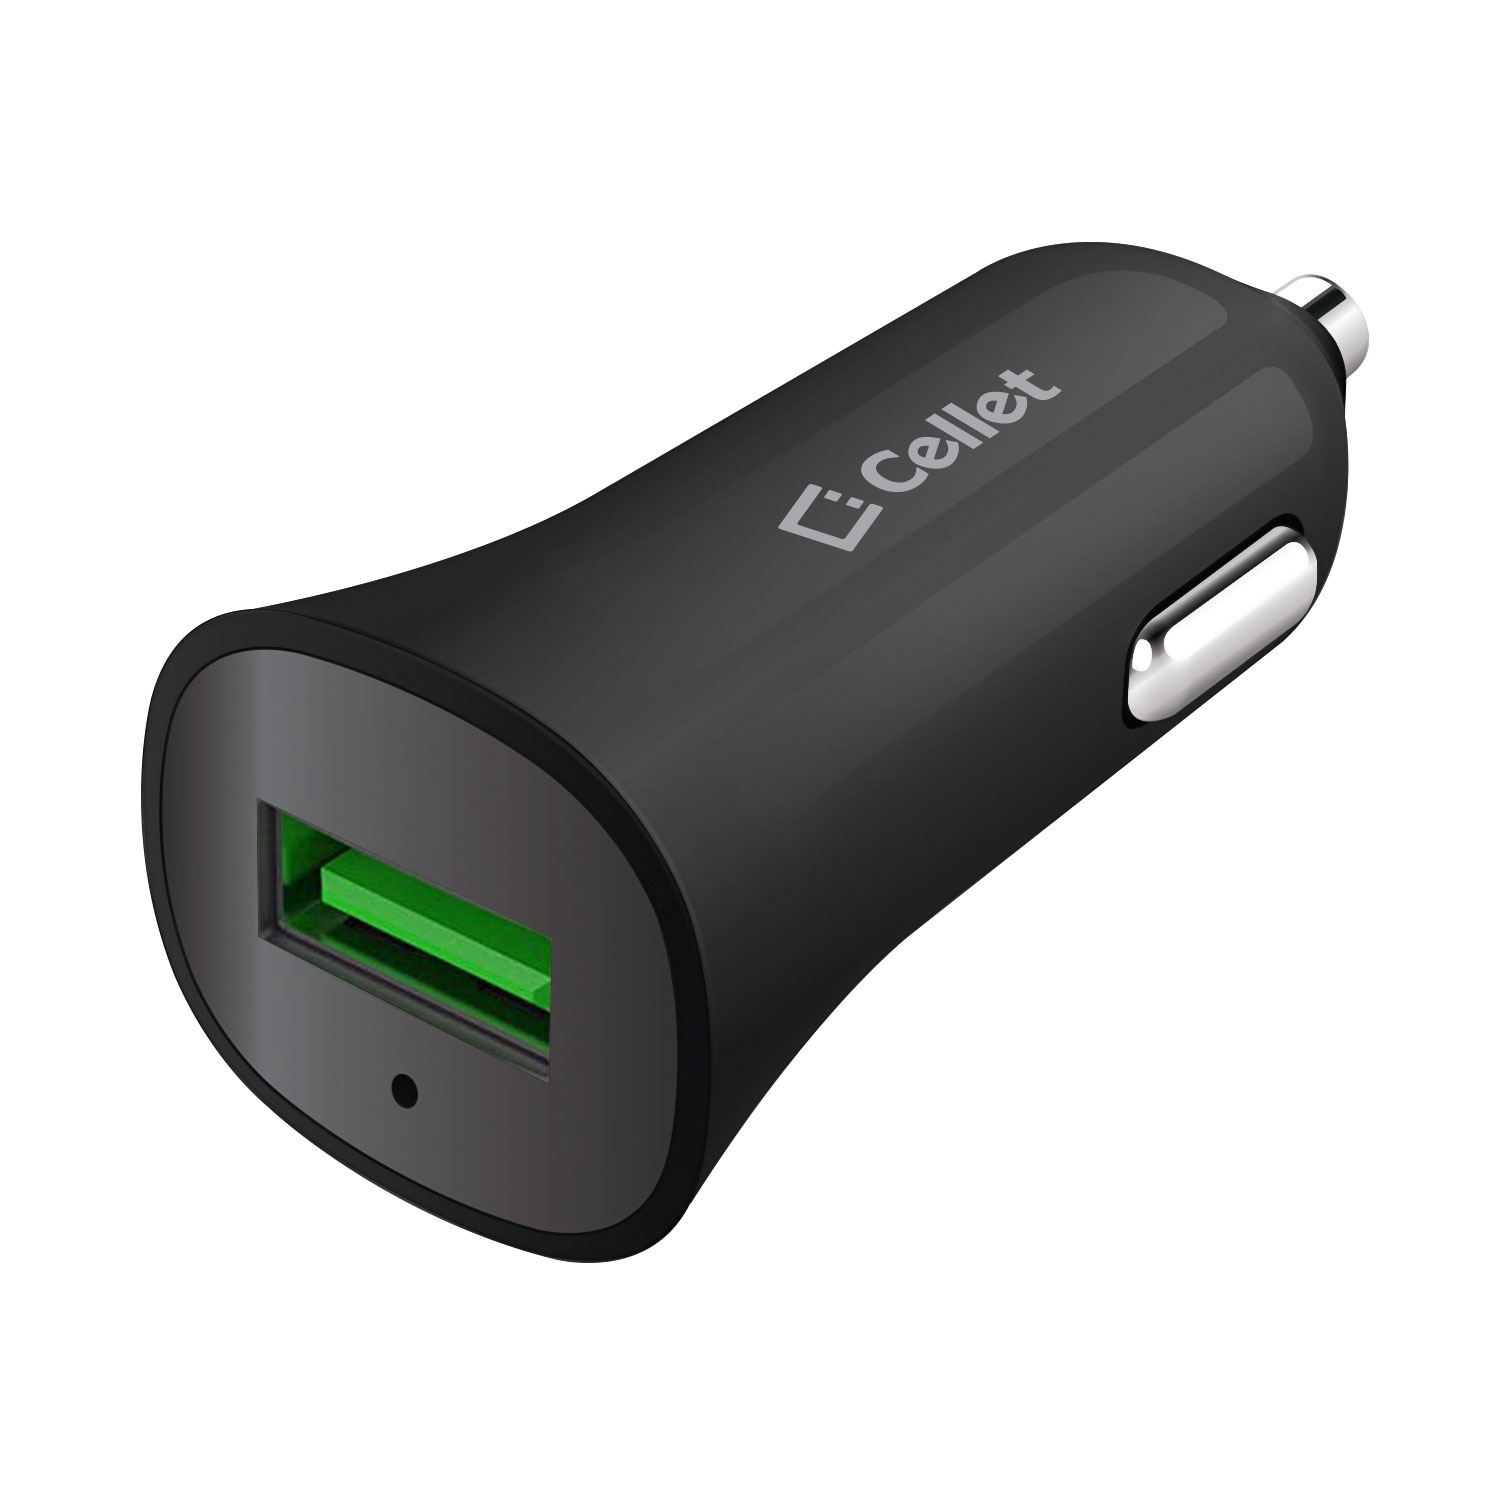 LG Spectrum Car Charger Quick Charge 3.0 Black 3.3ft